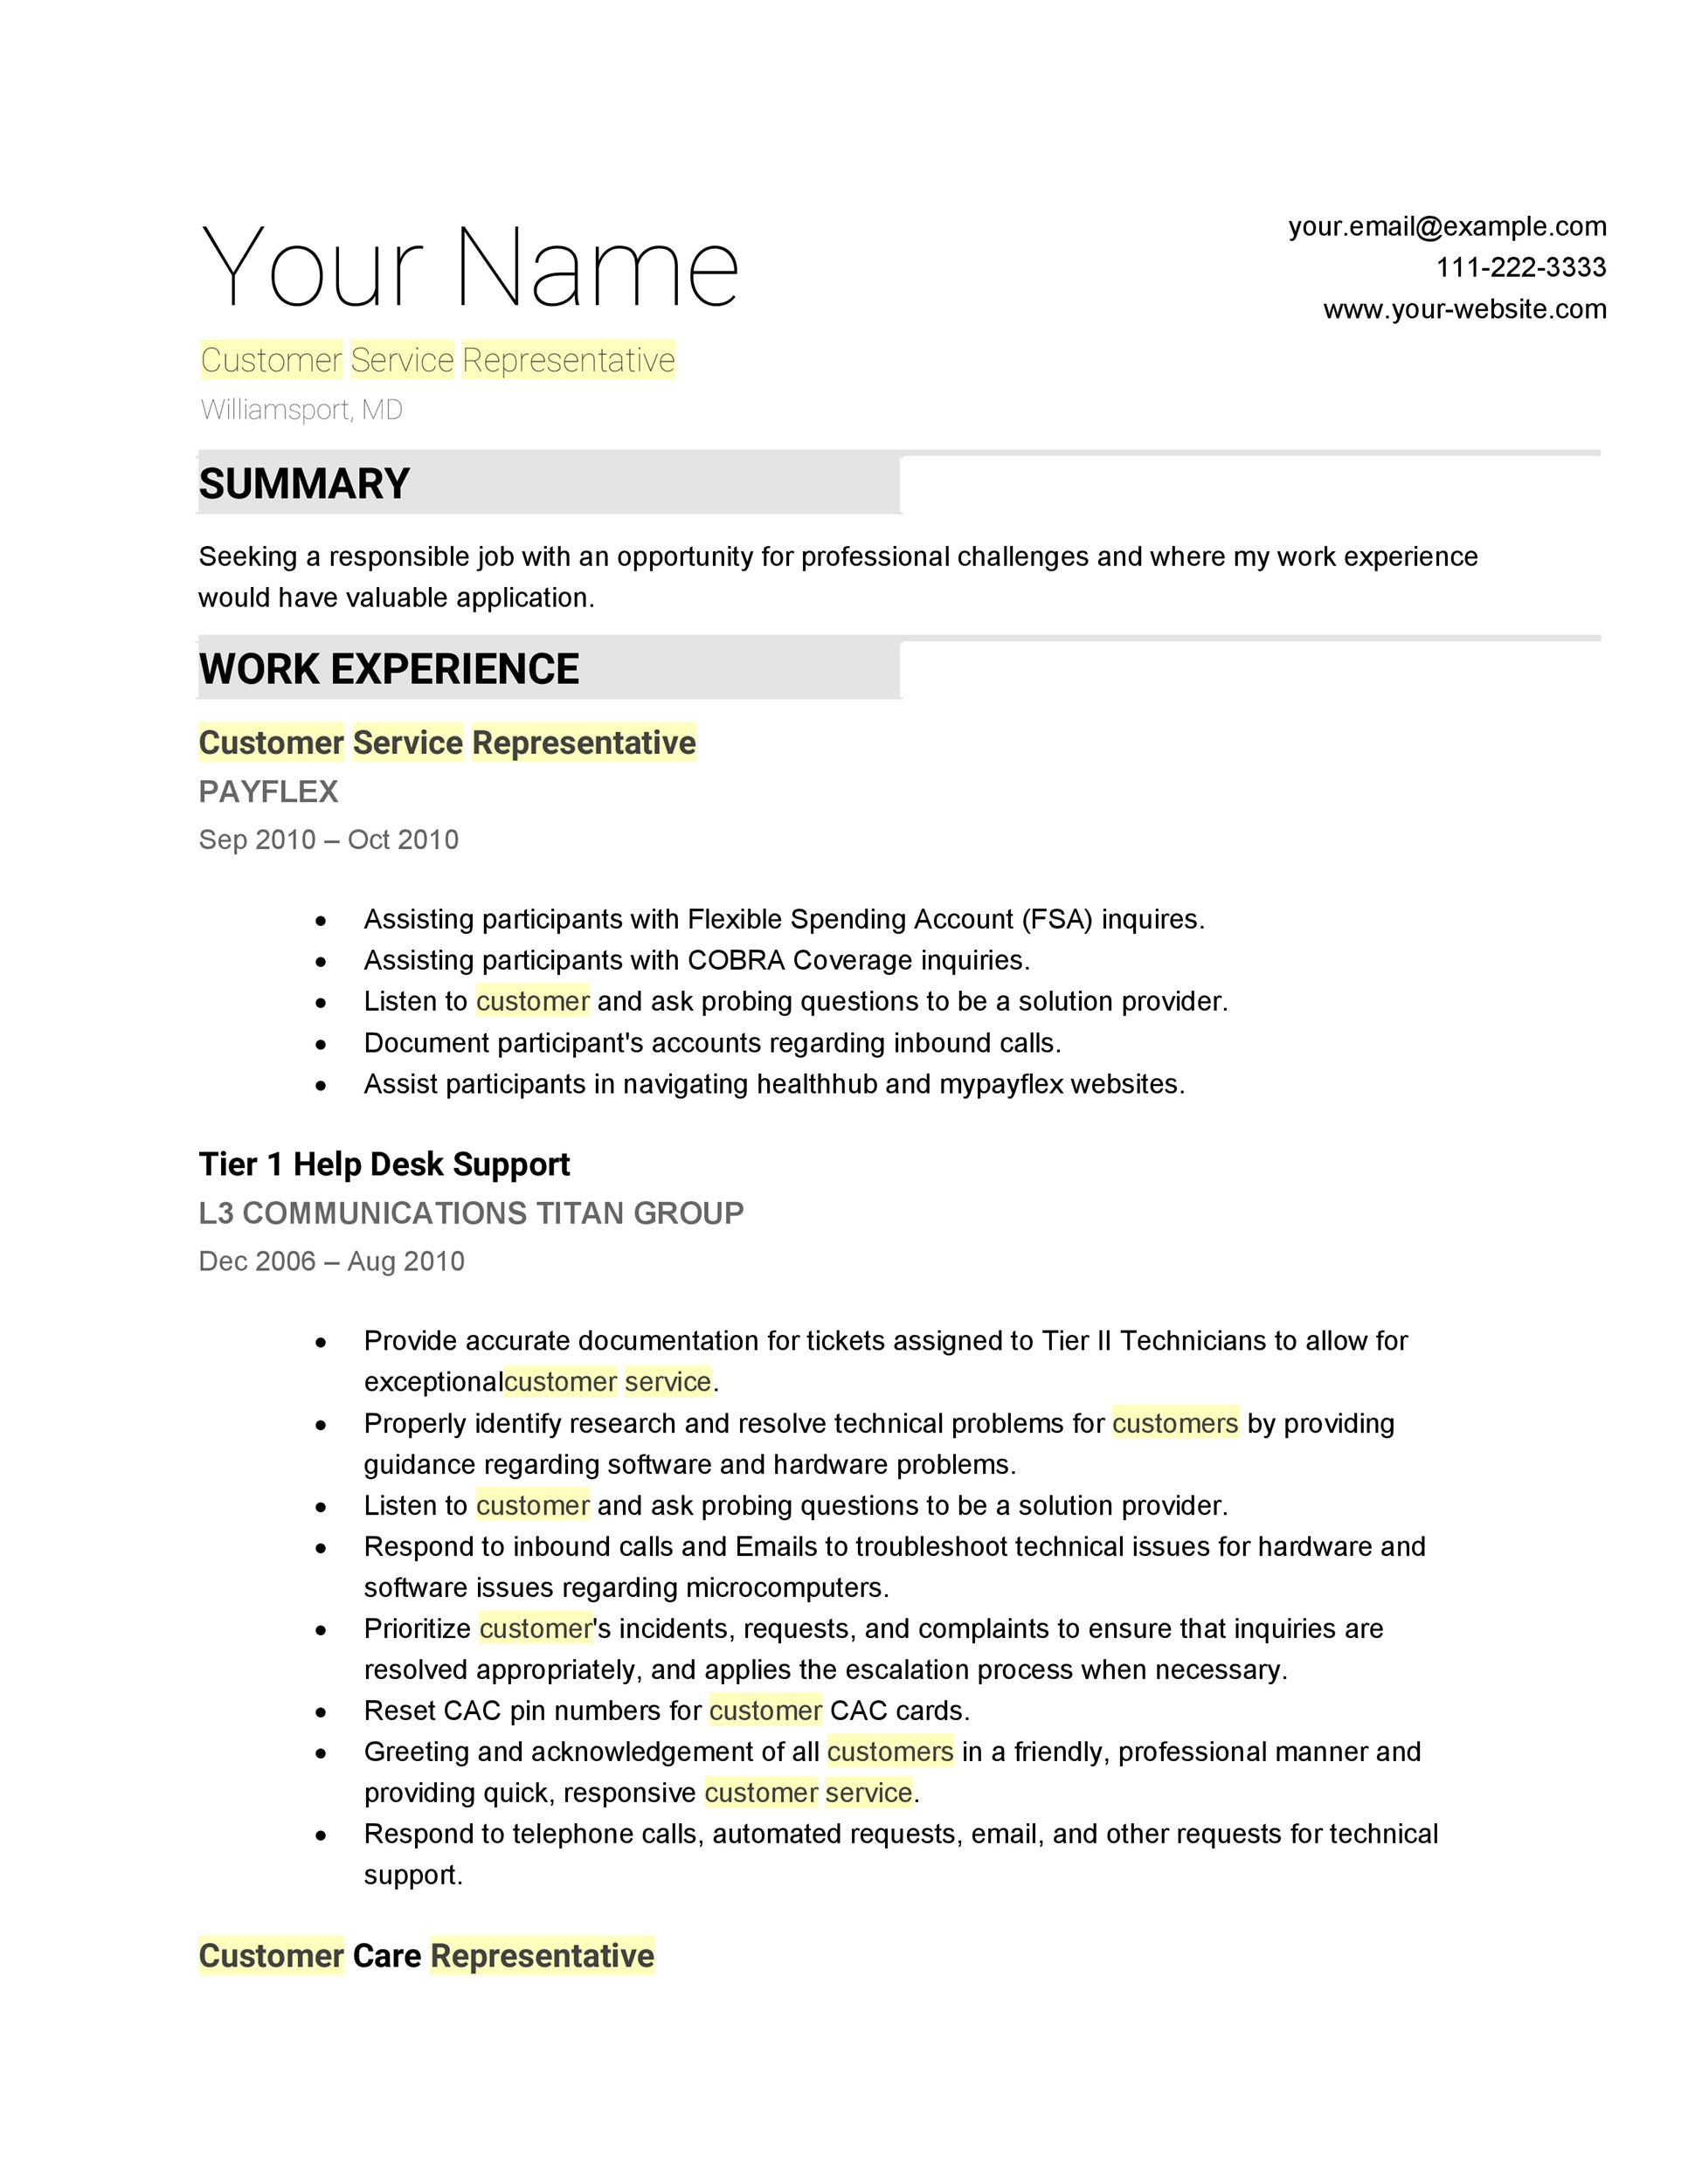 30+ Customer Service Resume Examples - Template Lab - sample resume for customer service